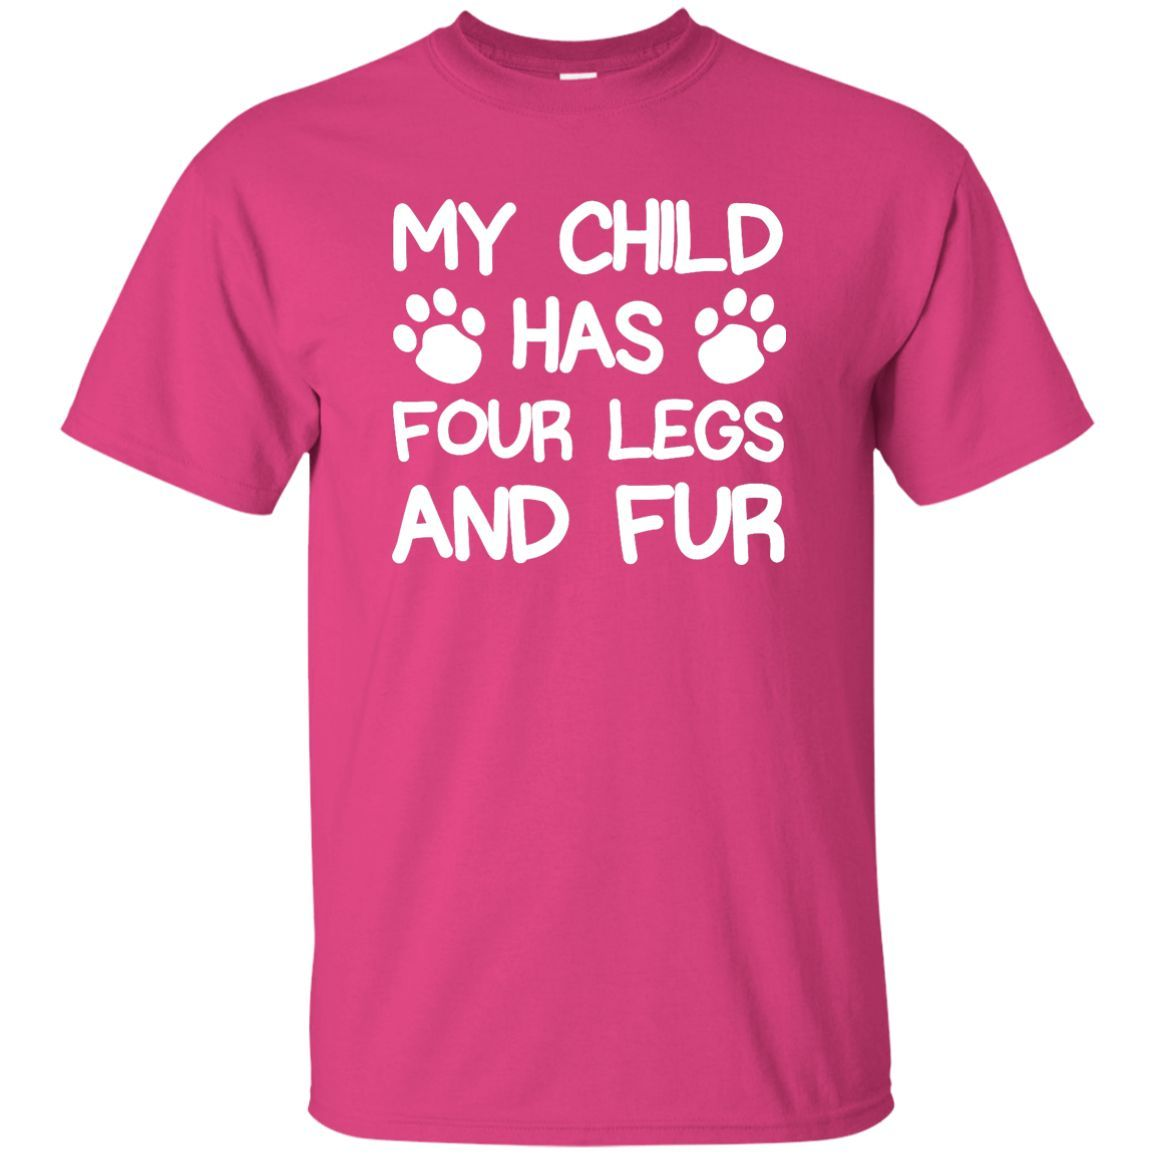 Four Legs And Fur - T Shirt